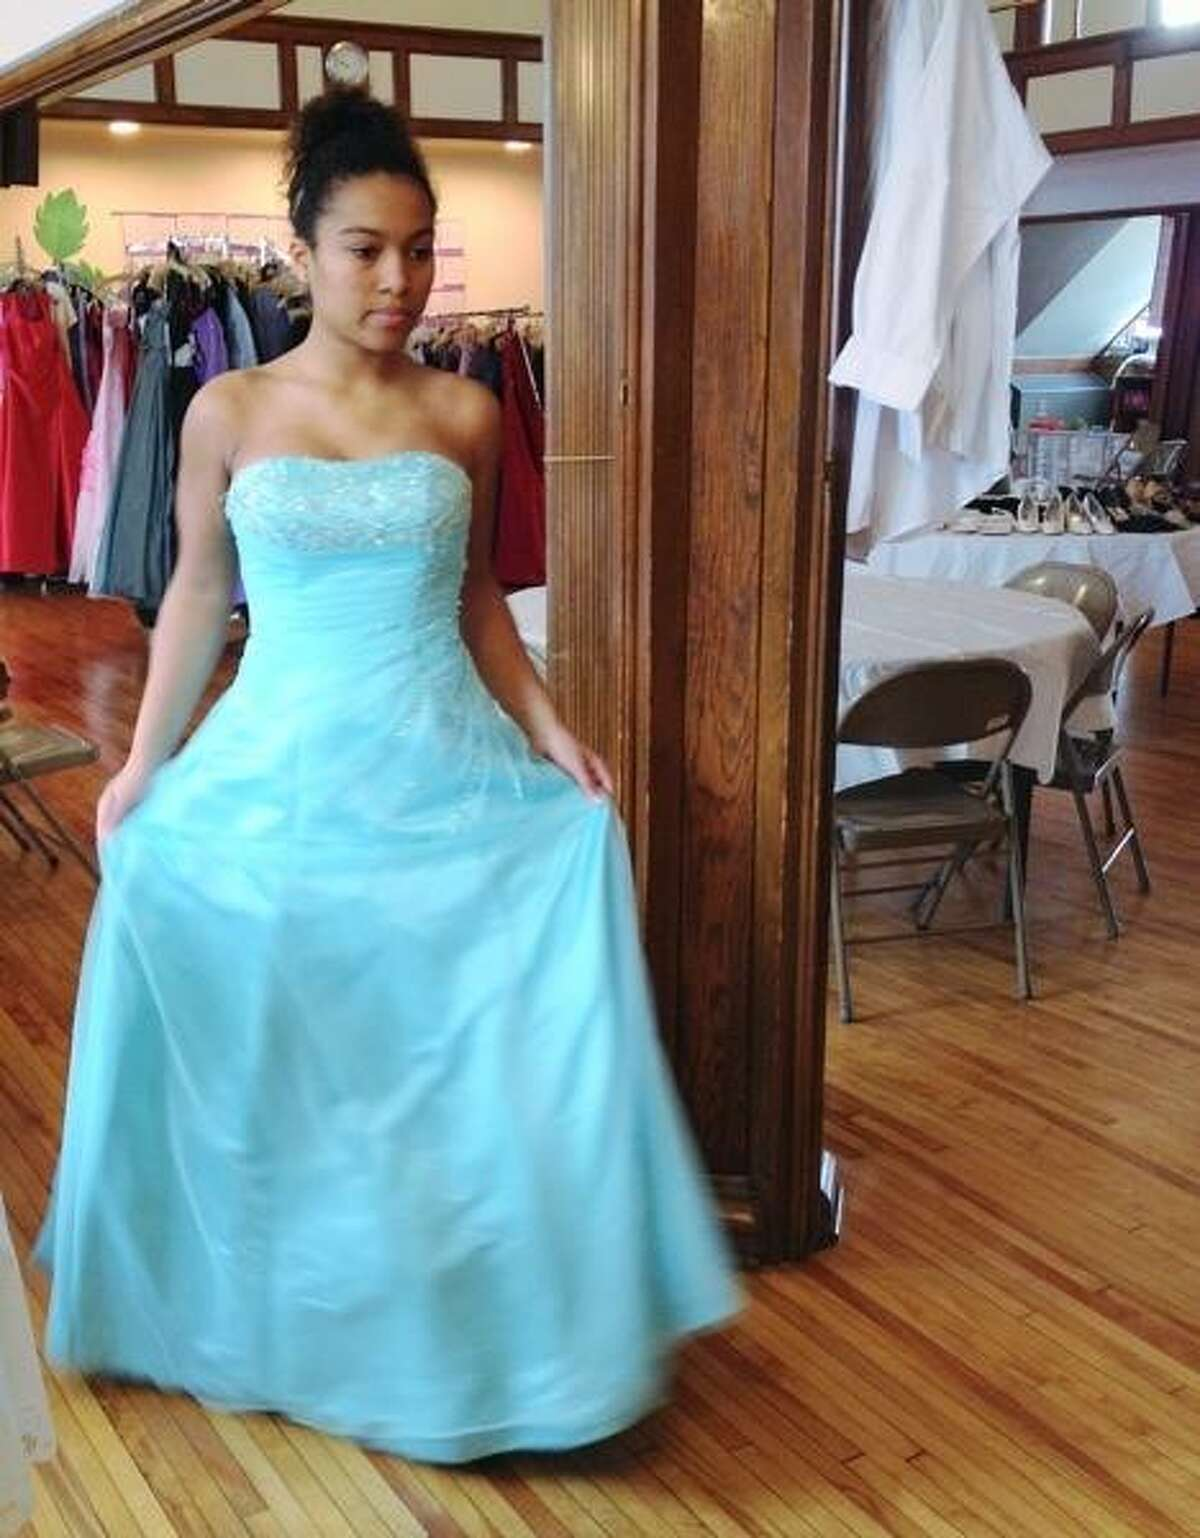 John Haeger @OneidaPhoto on Twitter/Oneida Daily Dispatch Coralie Lolliot tries on a prom dress during the First Presbyterian Church of Oneida fourth annual prom and dinner dance dress giveaway on Saturday, March 16, 2013..